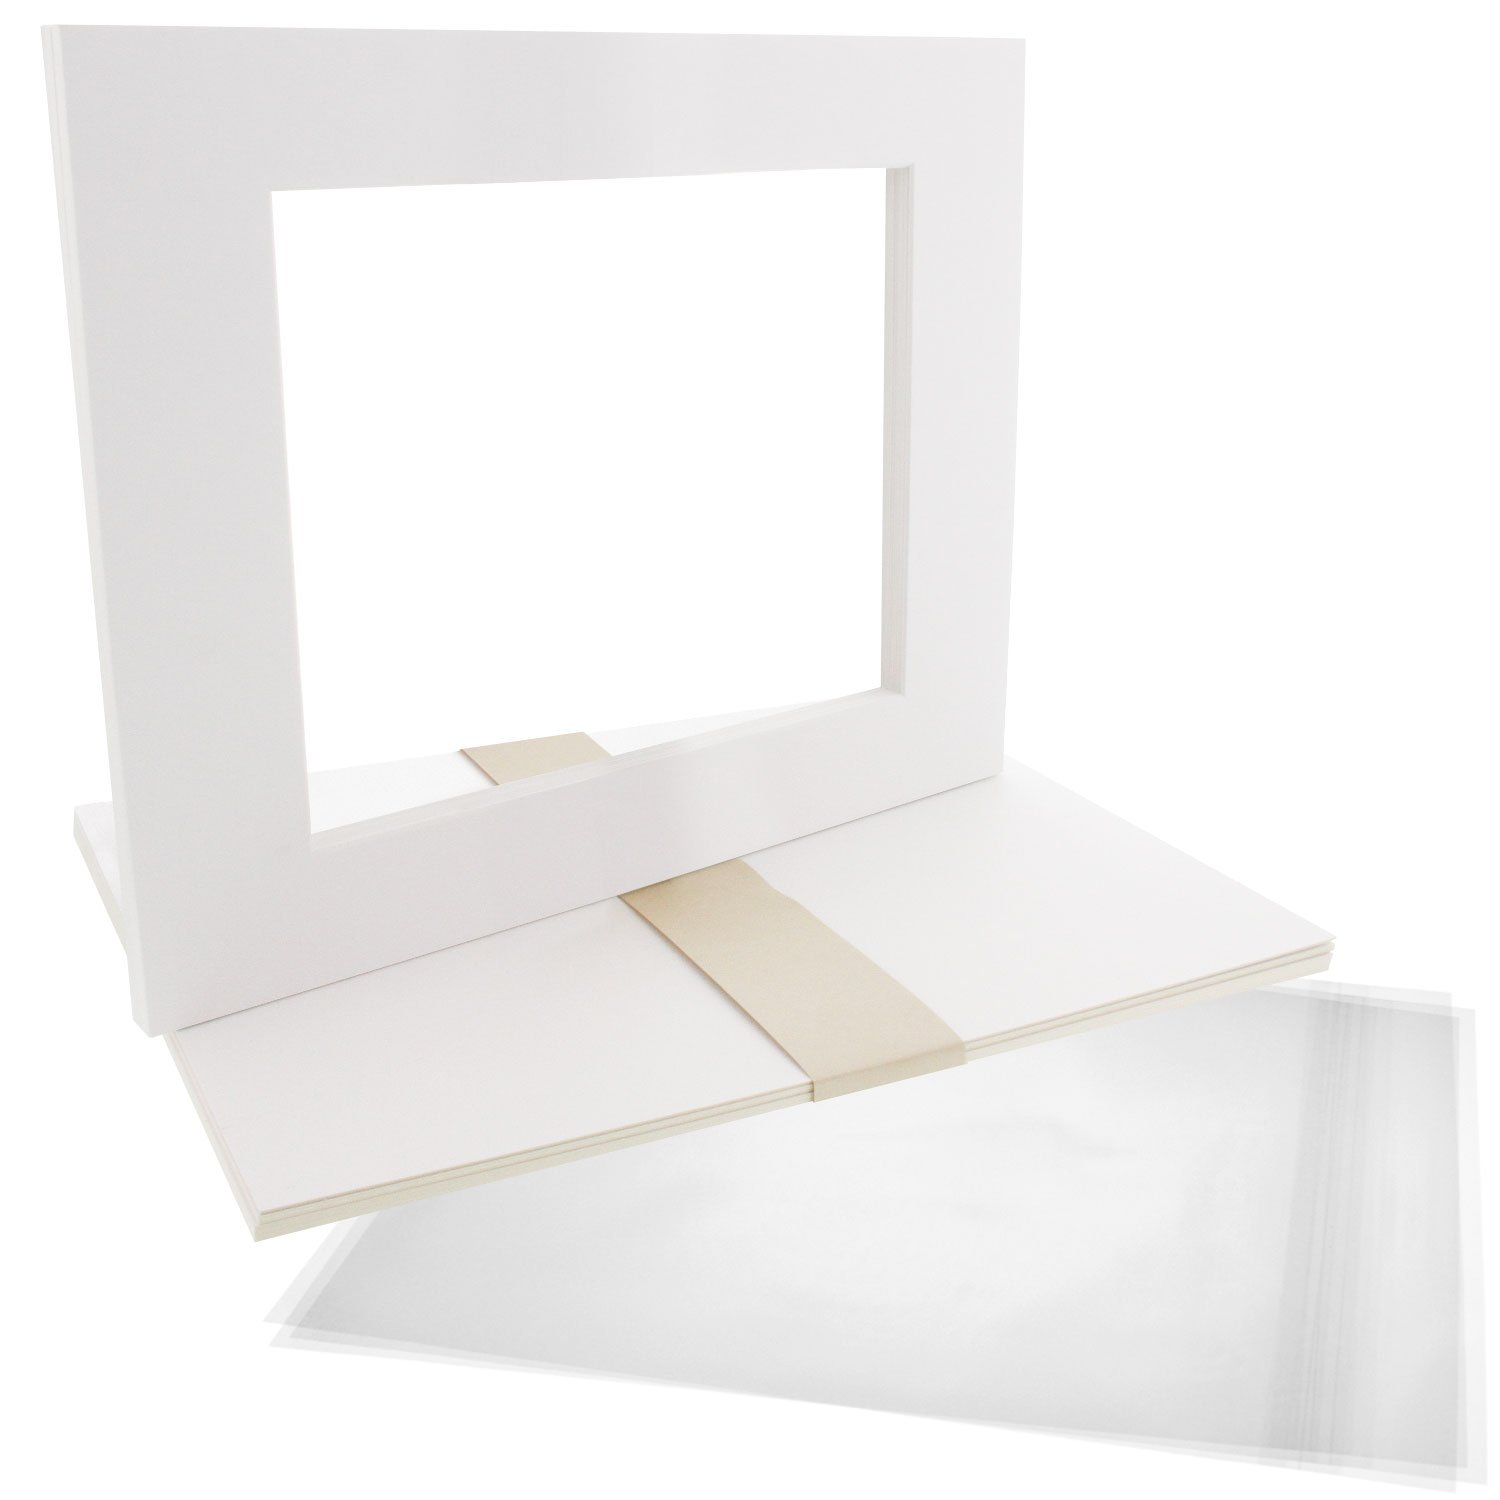 US Art Supply Art Mats Acid-Free Pre-Cut 16x20 White Picture Mat Matte Sets. Includes a Pack of 5 White Core Bevel Cut Mattes for 11x14 Photos, Pack of 5 Backers & 5 Clear Sleeves Bags by US Art Supply